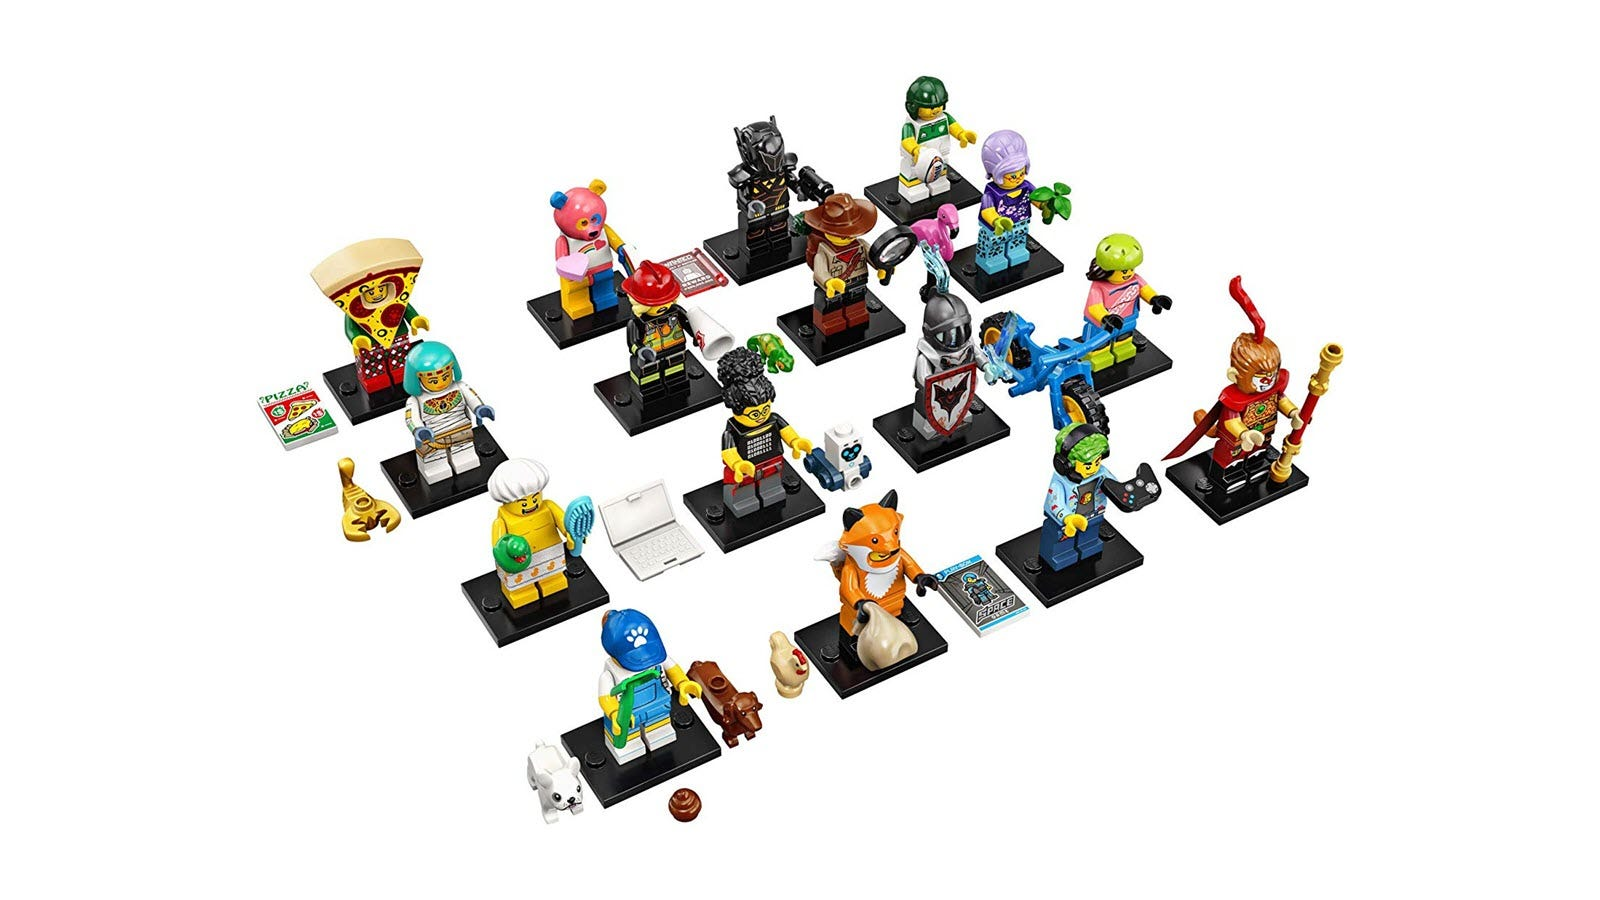 A group of 16 LEGO Minifigures dressed in adventurous costumes.